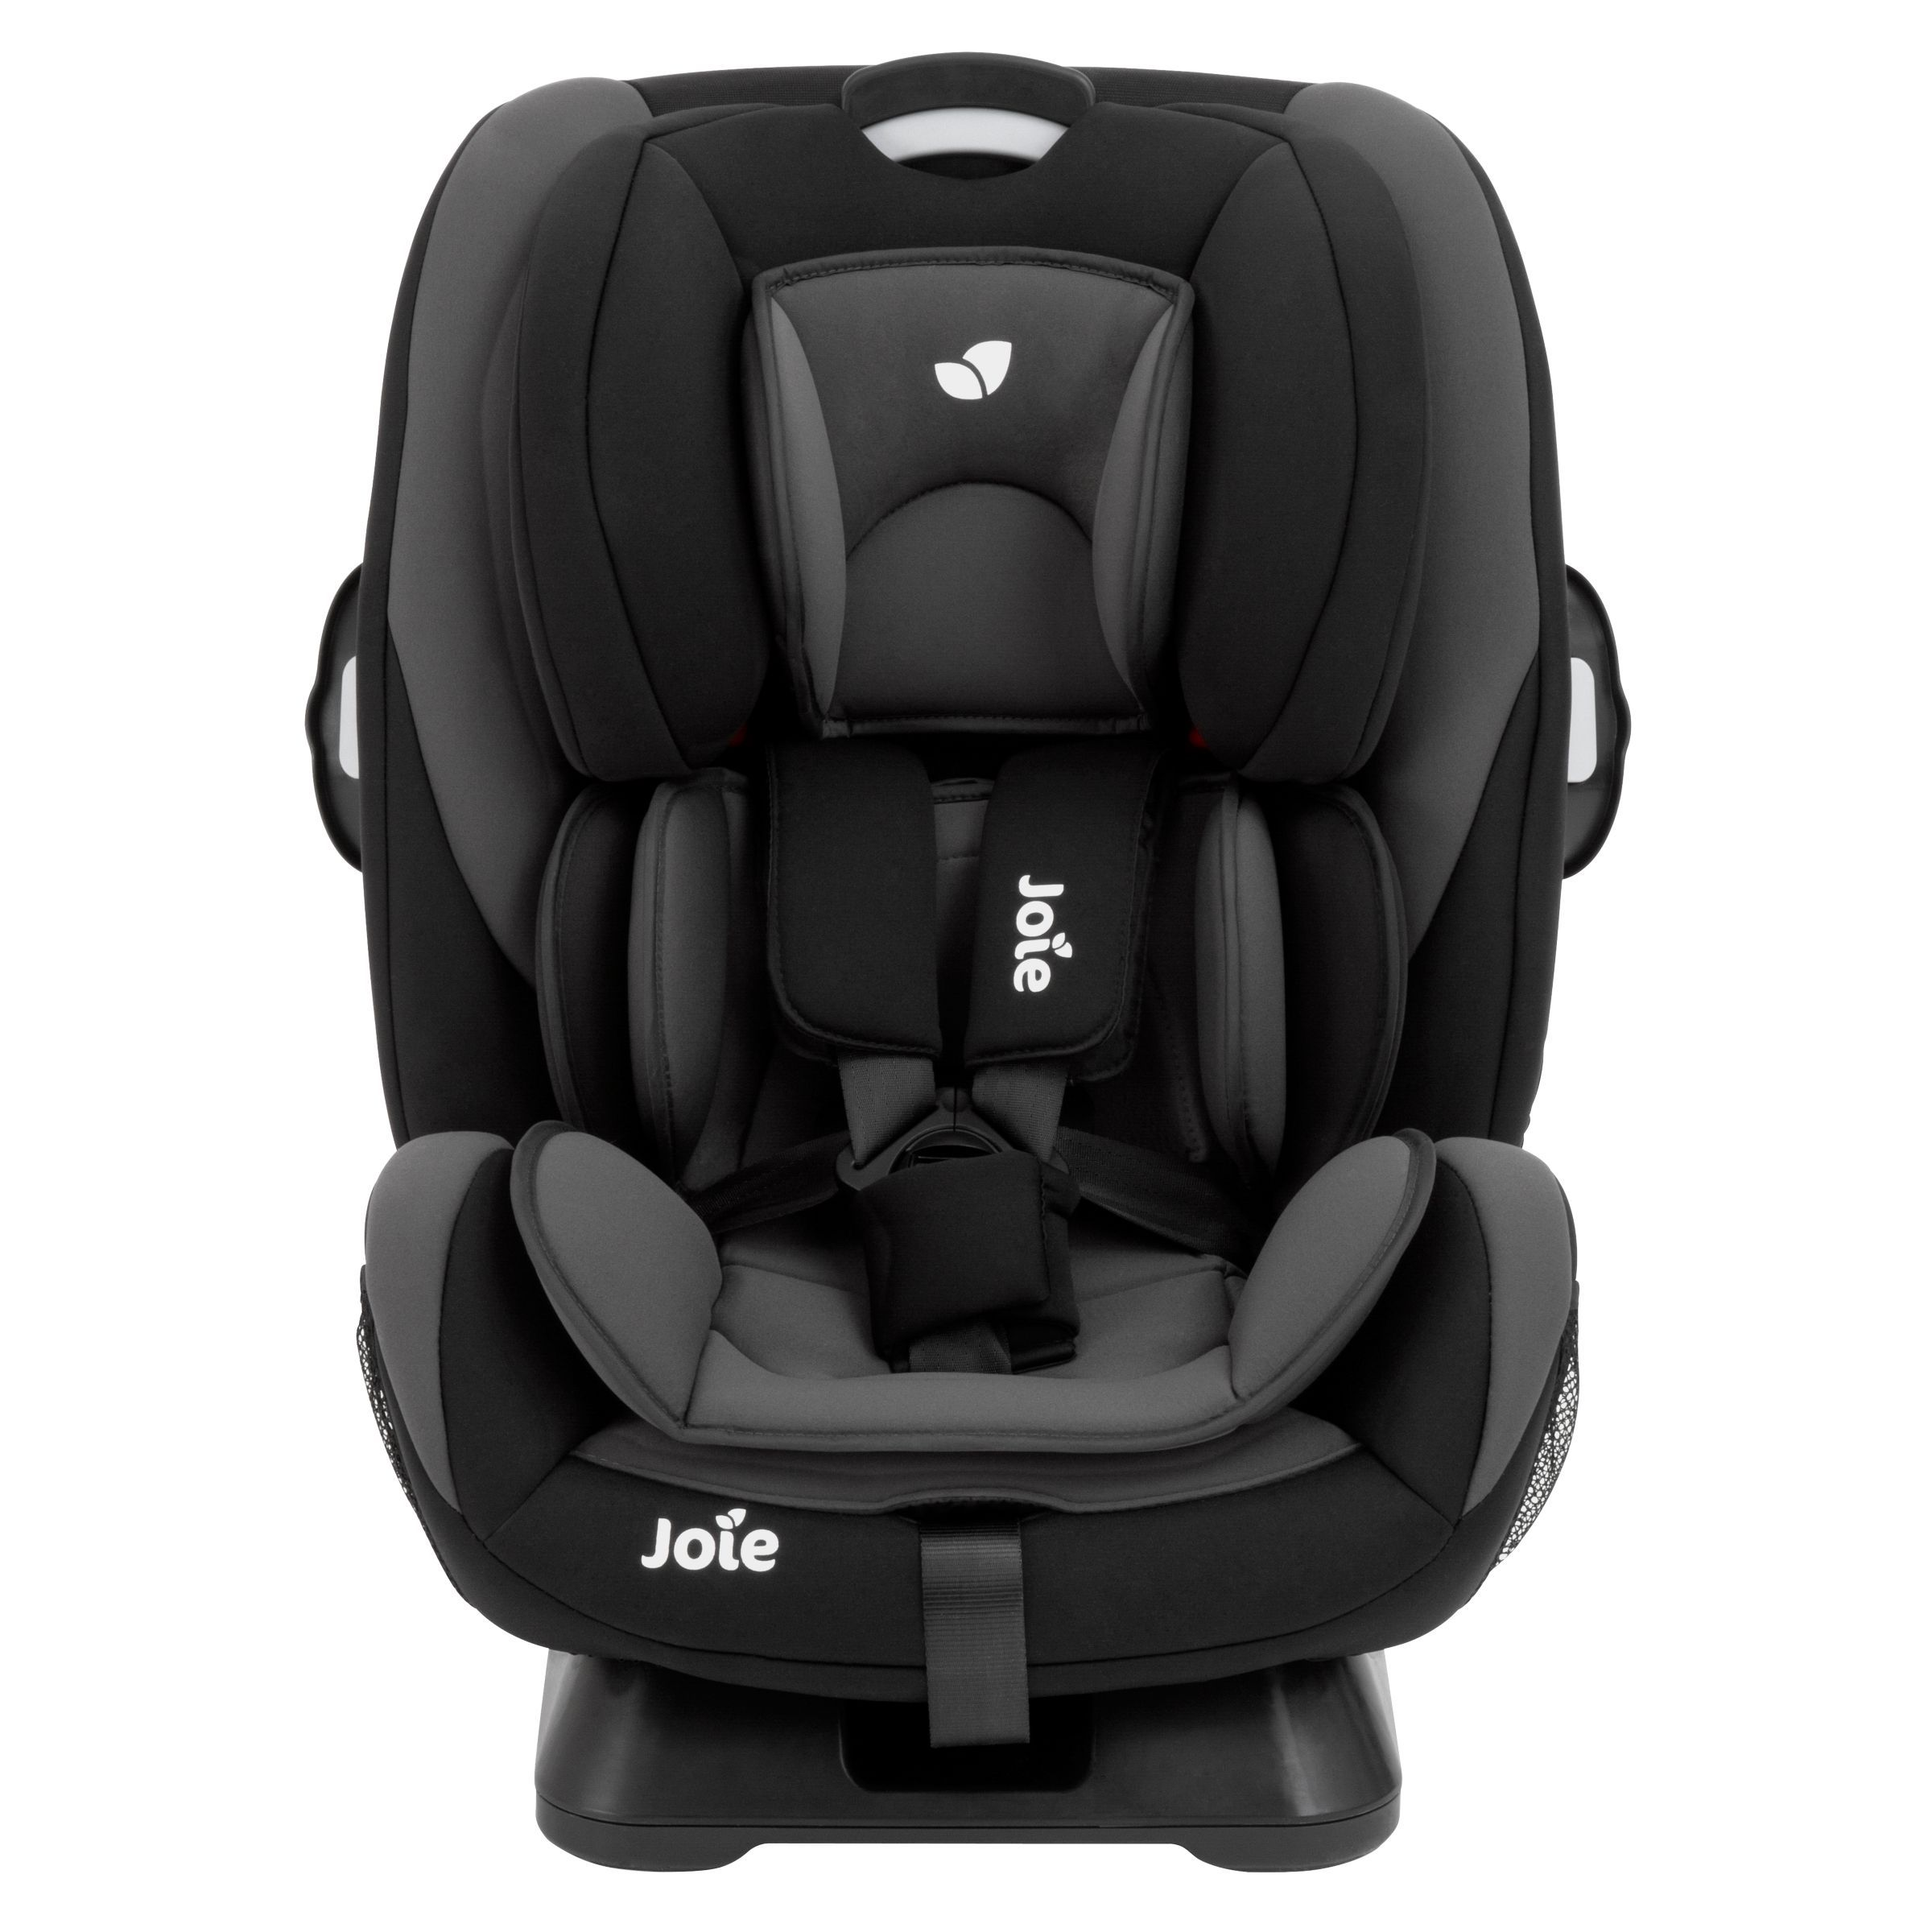 Joie Every Stage Group 0+/1/2/3 Car Seat, Two Tone Black